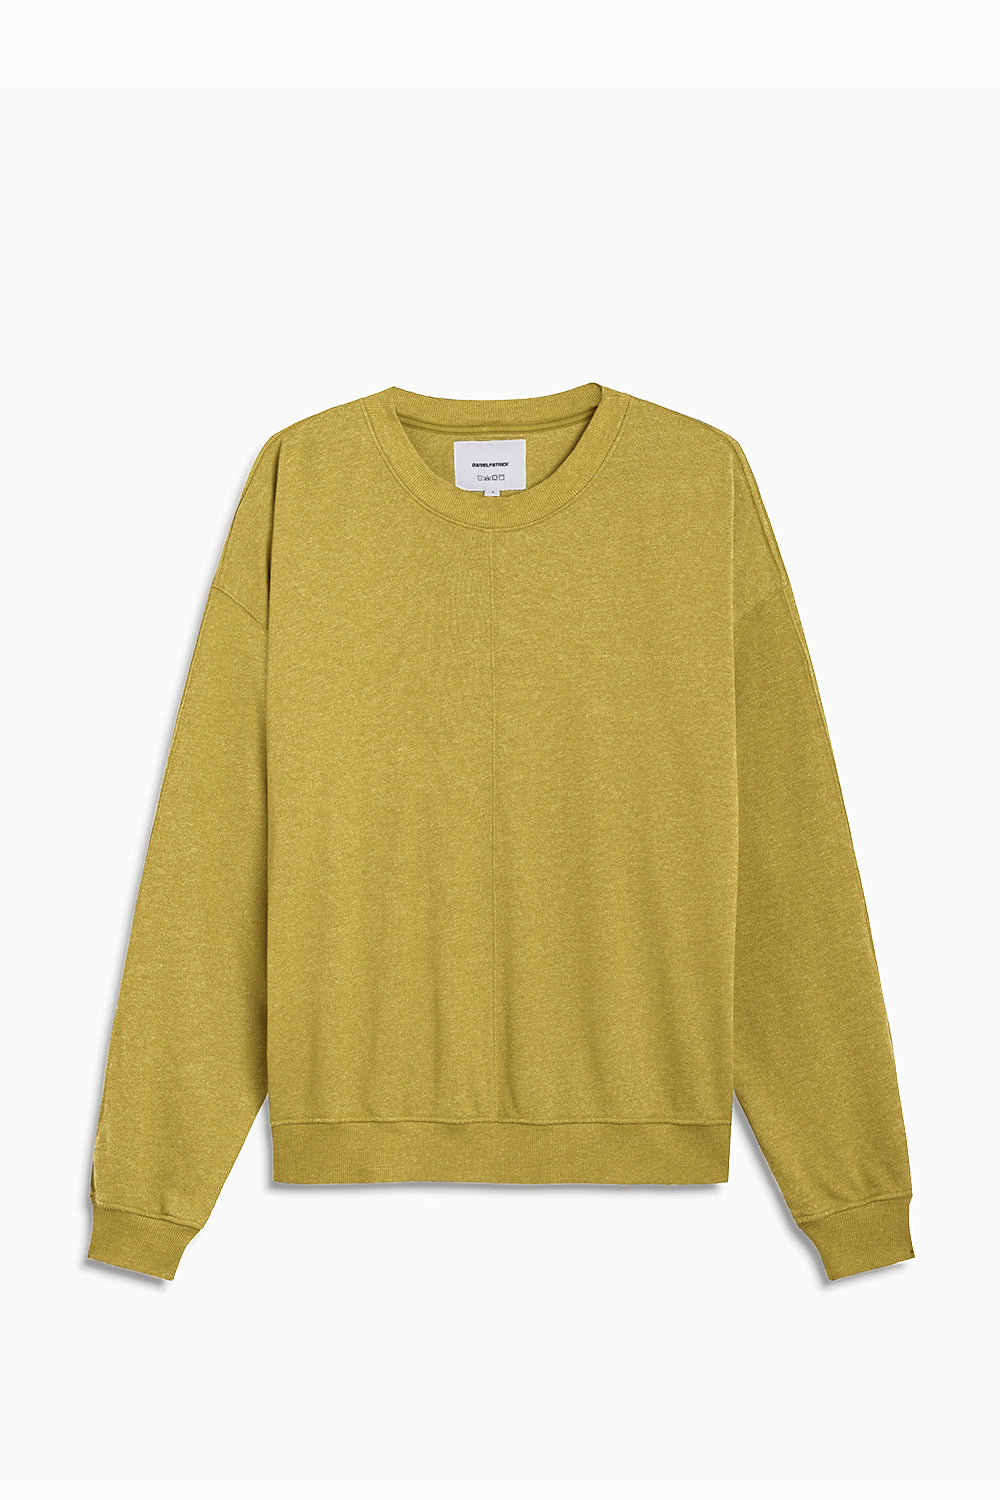 loop terry standard sweatshirt / mustard yellow